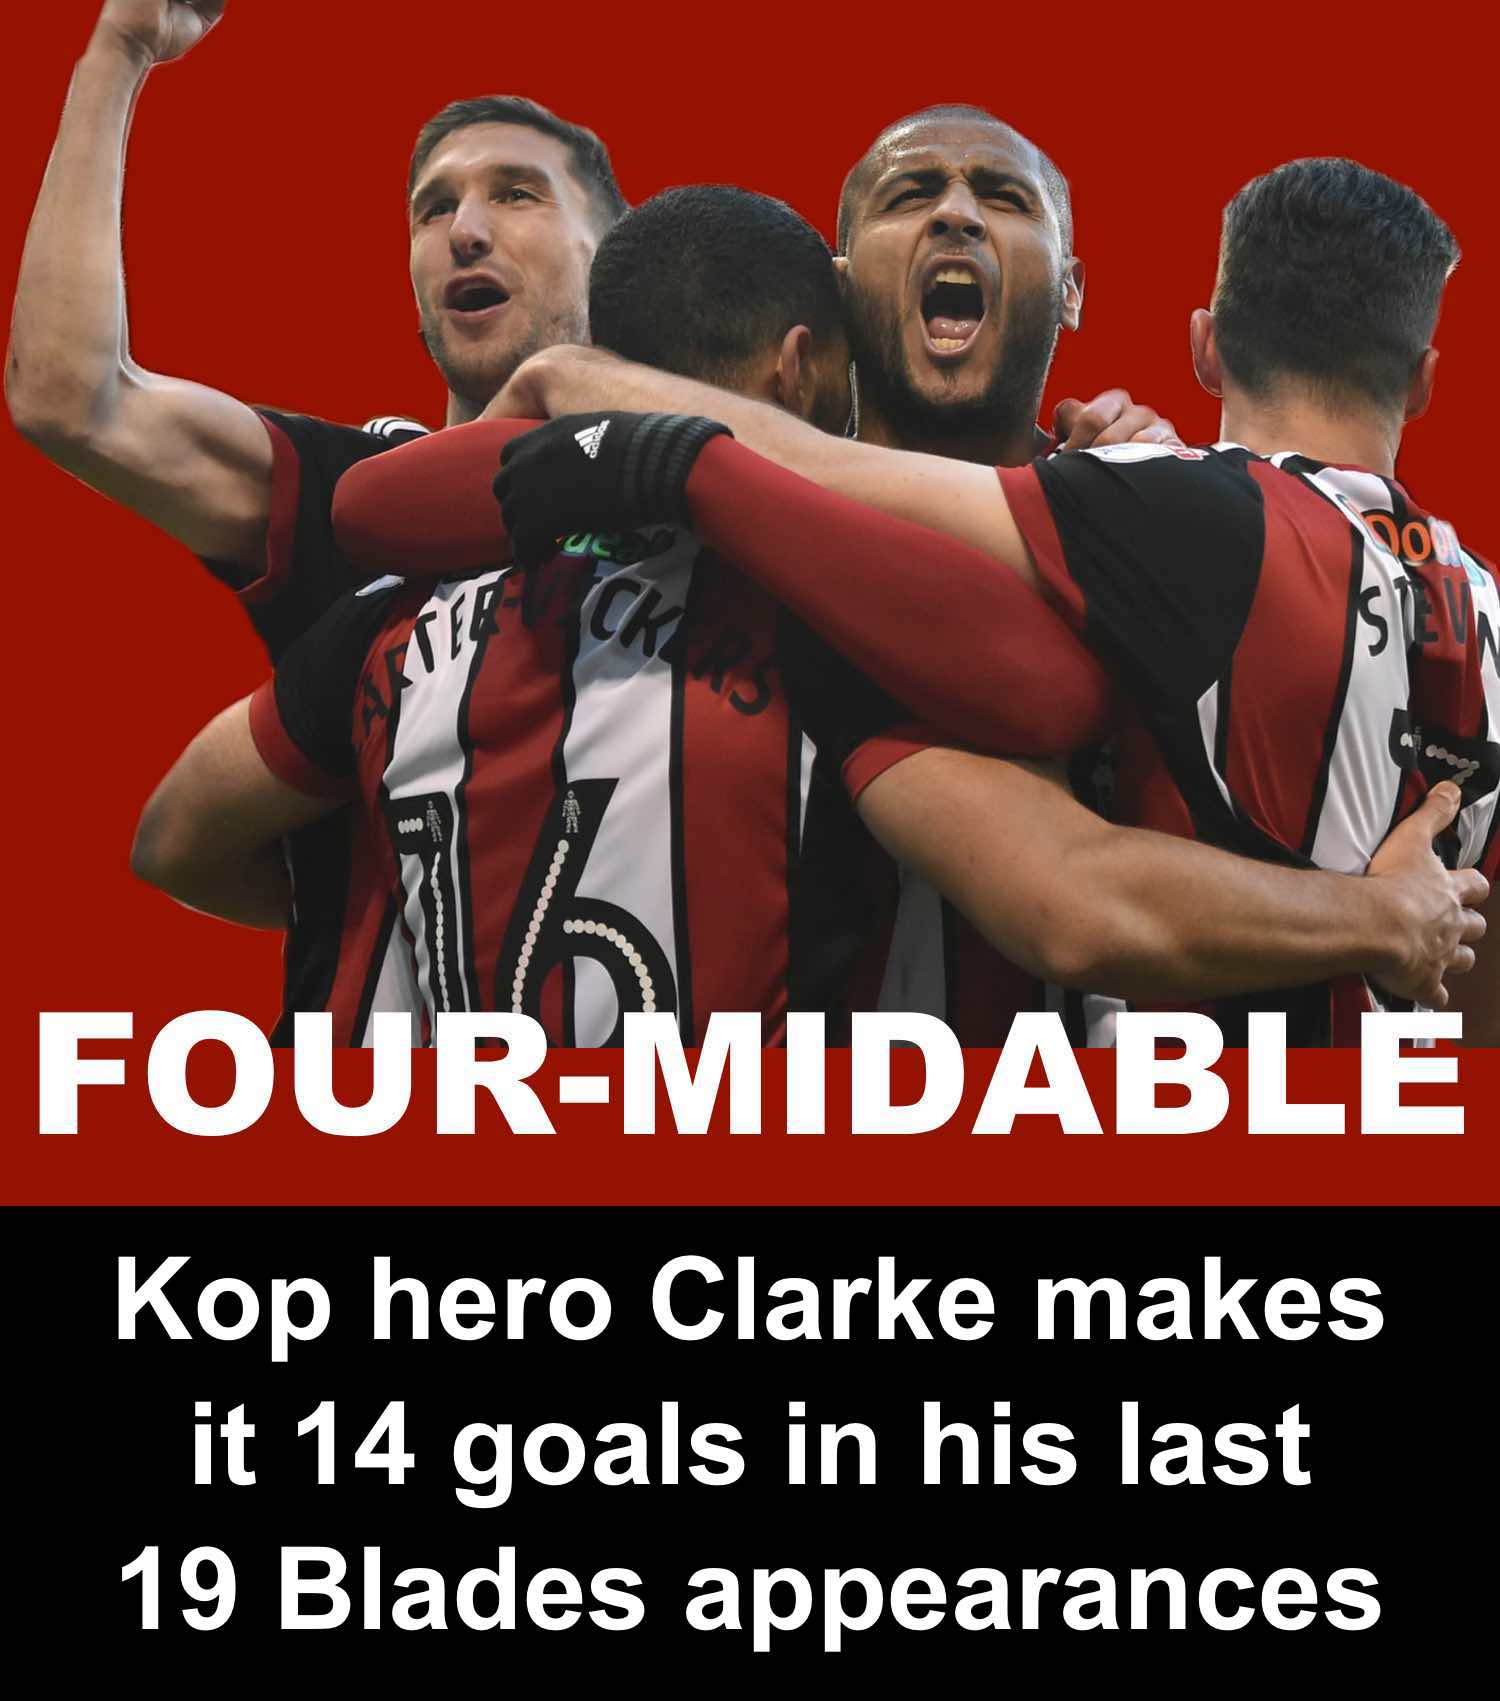 Sheffield United's Leon Clarke is four-midable after making it 14 goals in last 19 Blades appearances